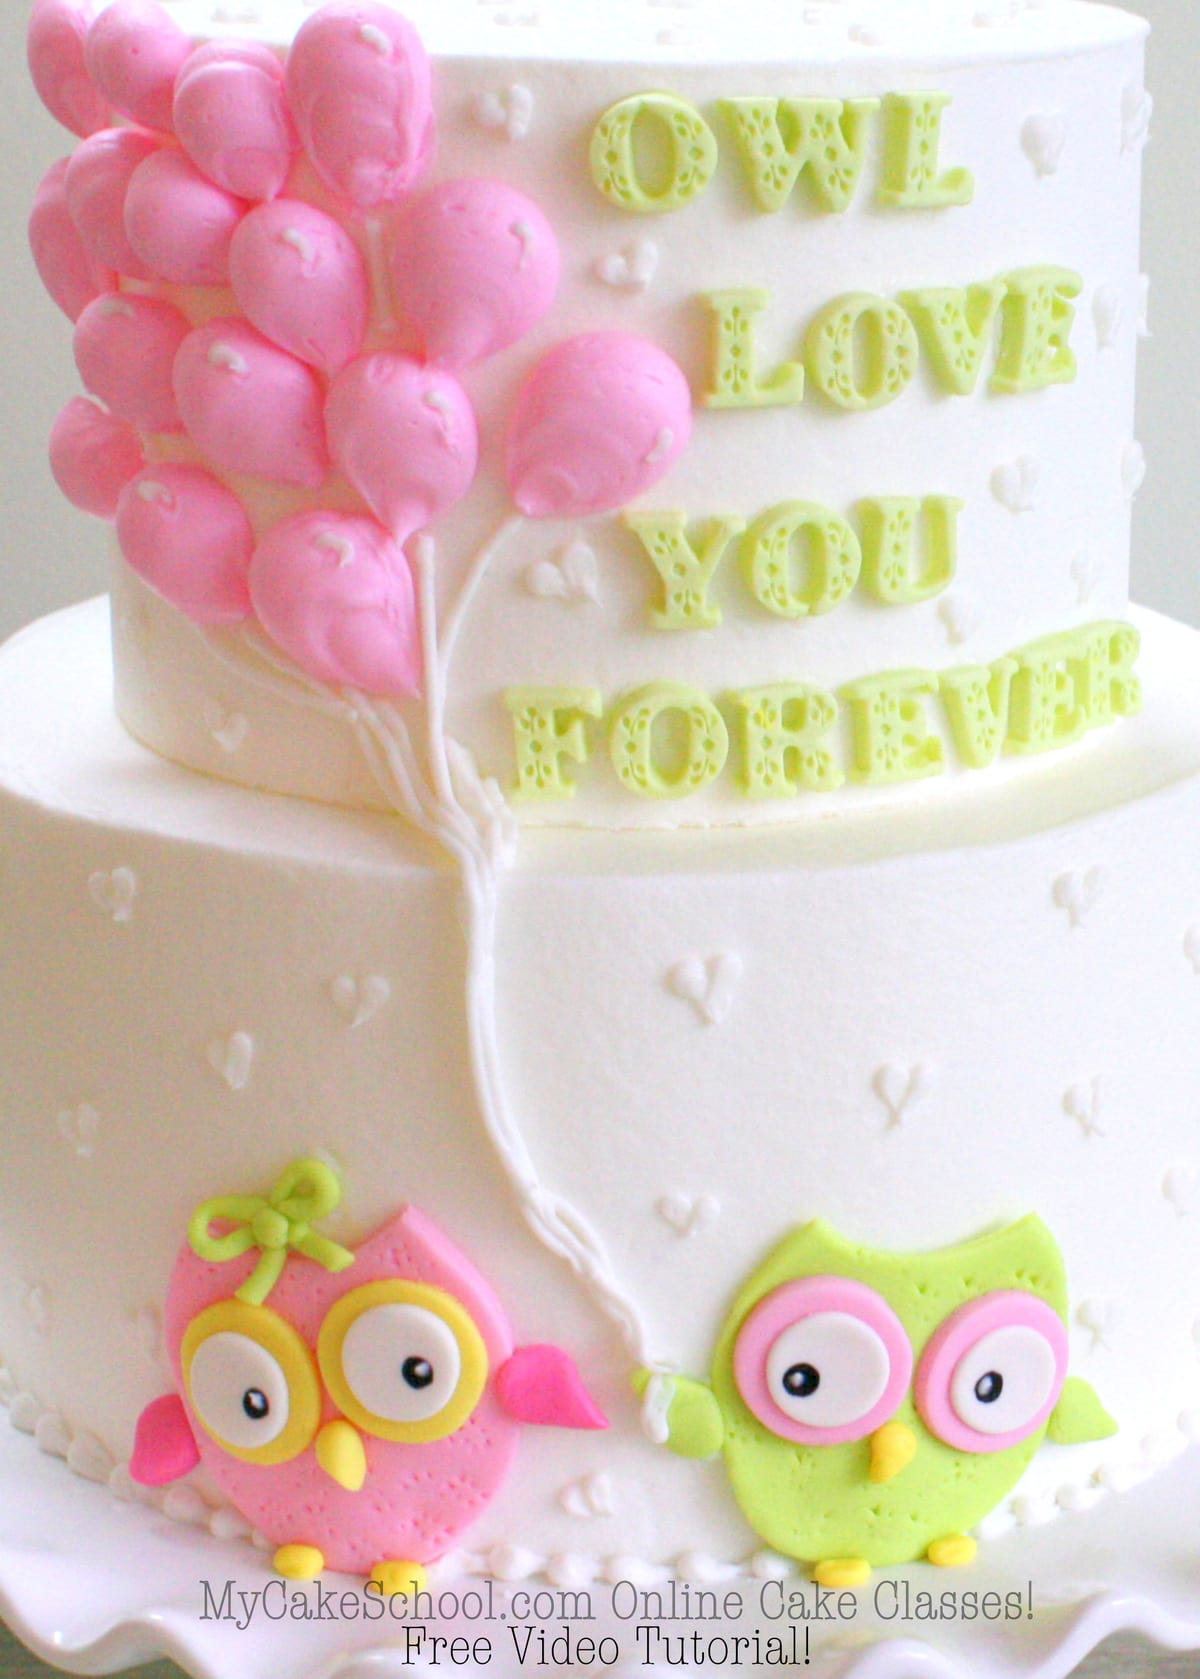 "Adorable ""Owl Love You Forever"" Cake! Free Video Tutorial by MyCakeSchool.com!"